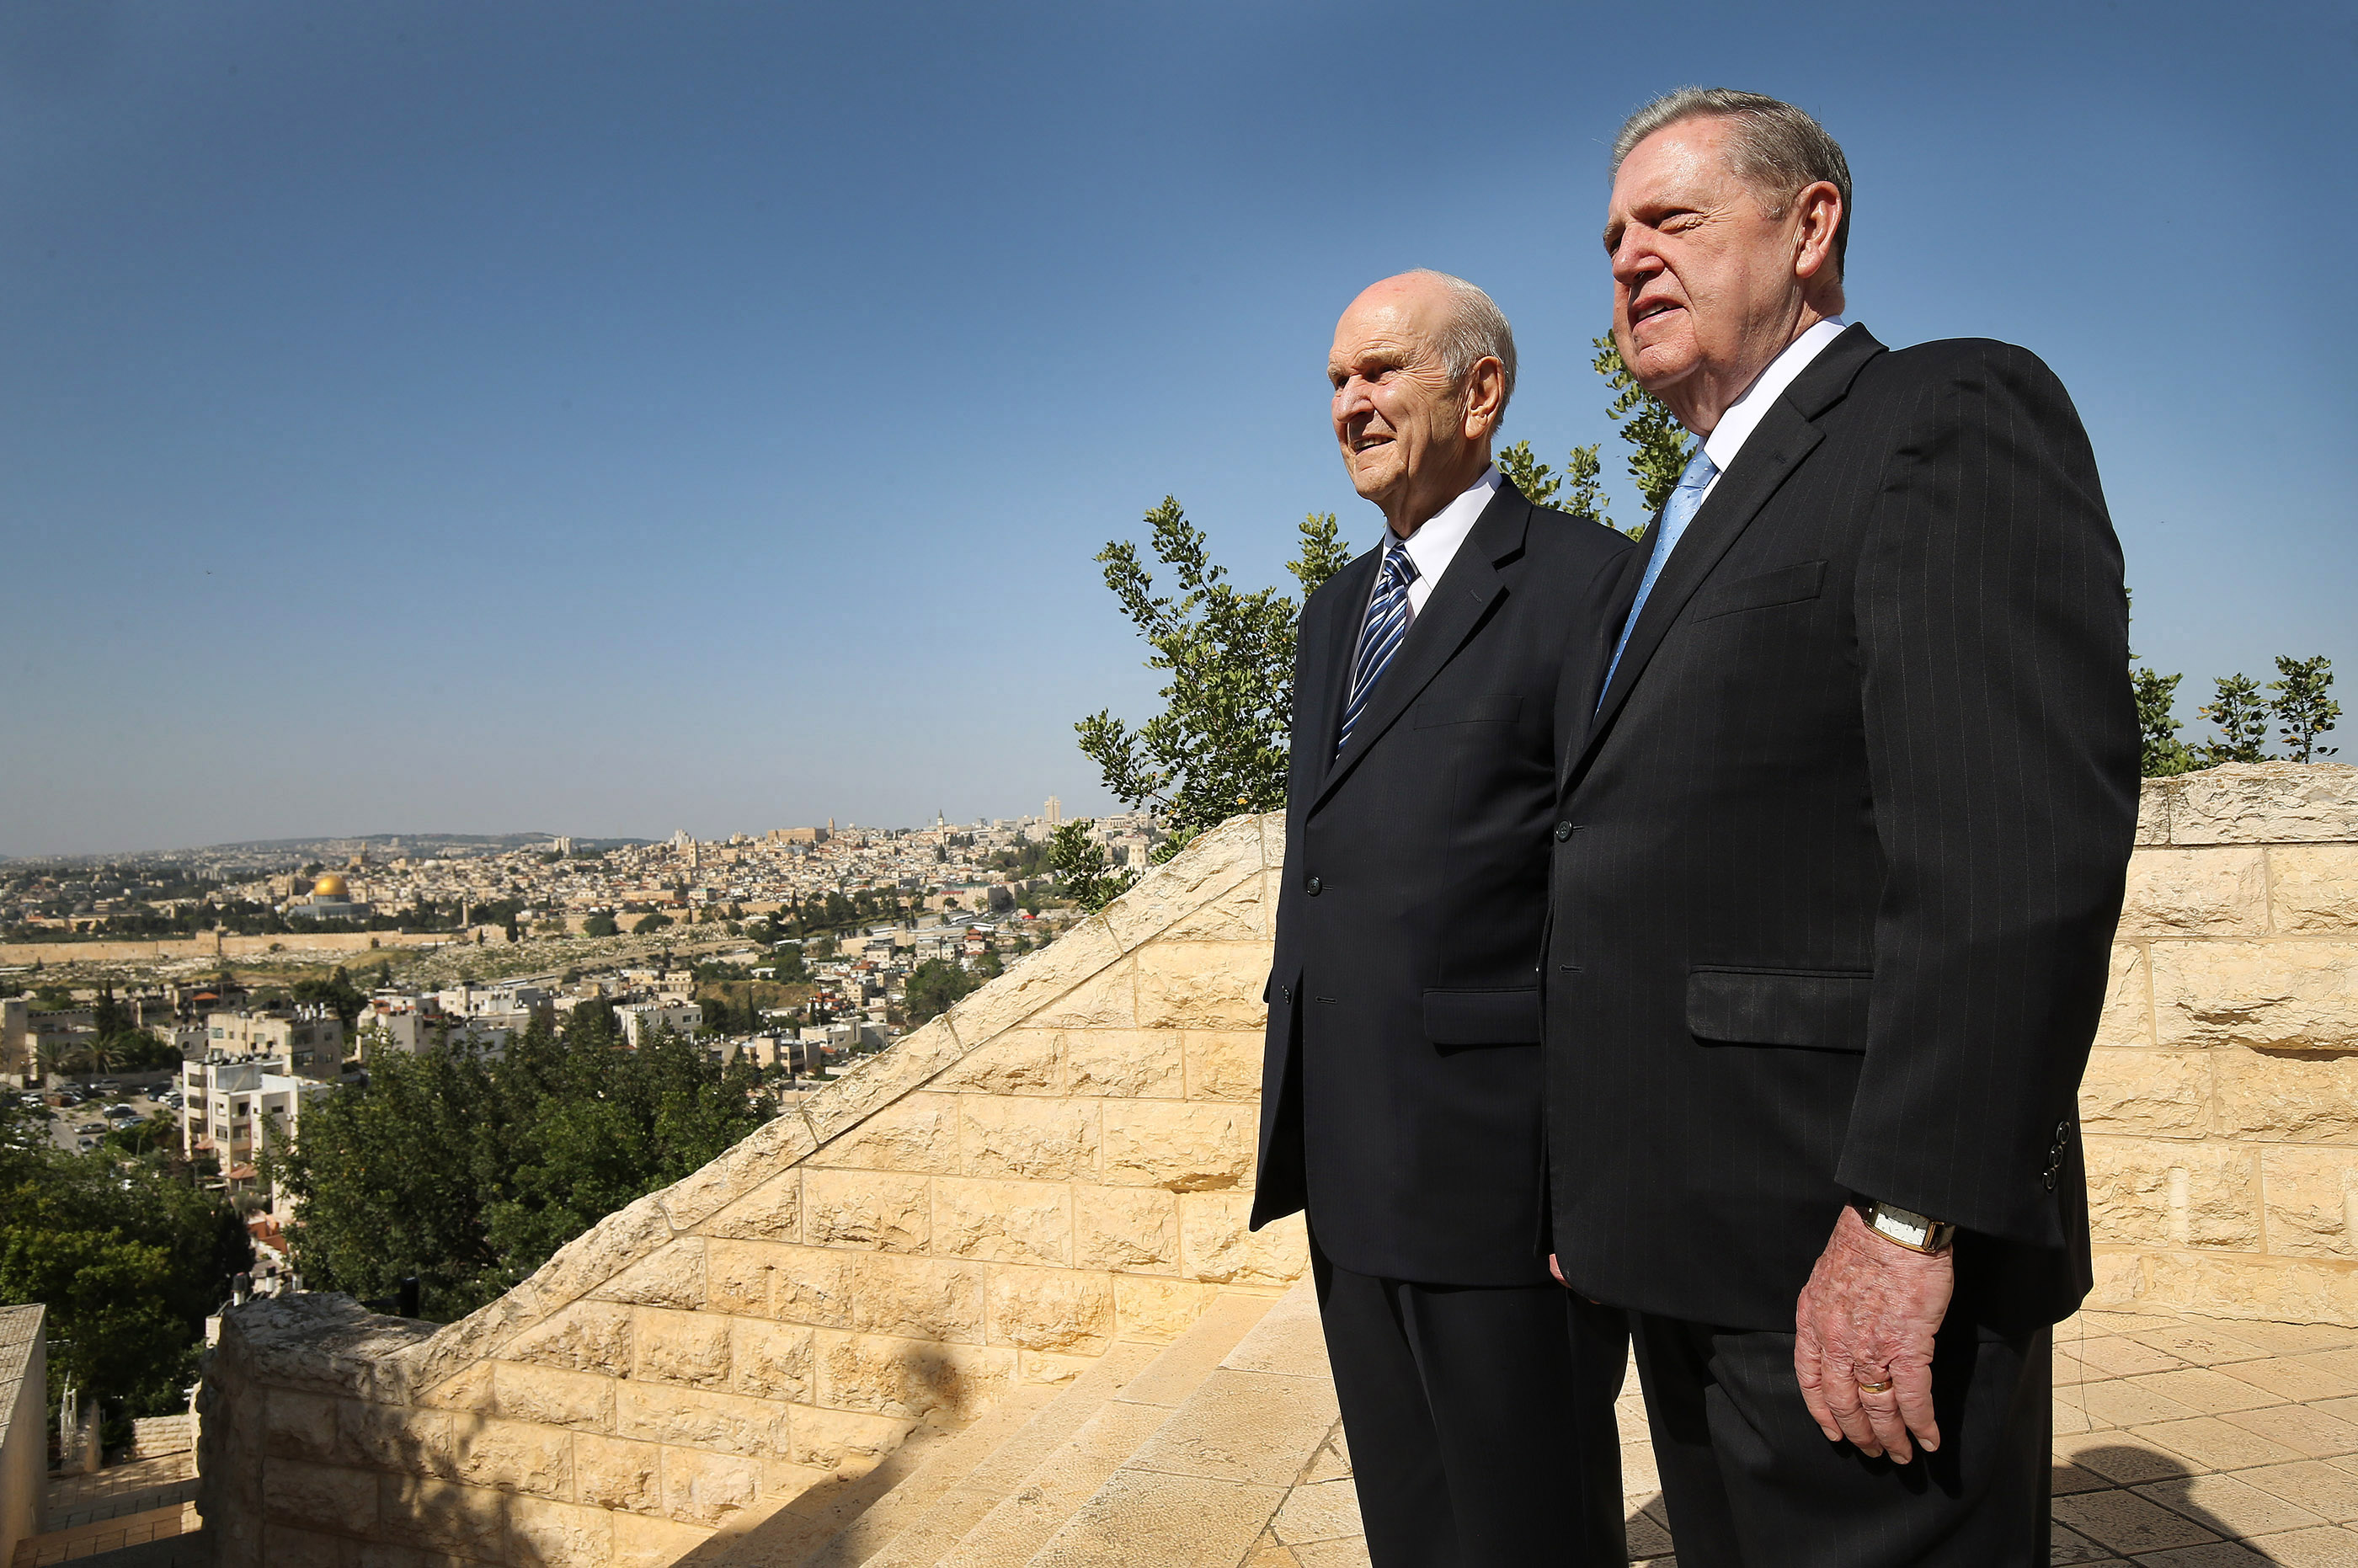 President Russell M. Nelson, president of The Church of Jesus Christ of Latter-day Saints, left, and Elder Jeffrey R. Holland, of the Quorum of the Twelve Apostles, look over the view at the BYU Jerusalem Center in Jerusalem on Saturday, April 14, 2018. The two are on a global tour of eight countries.